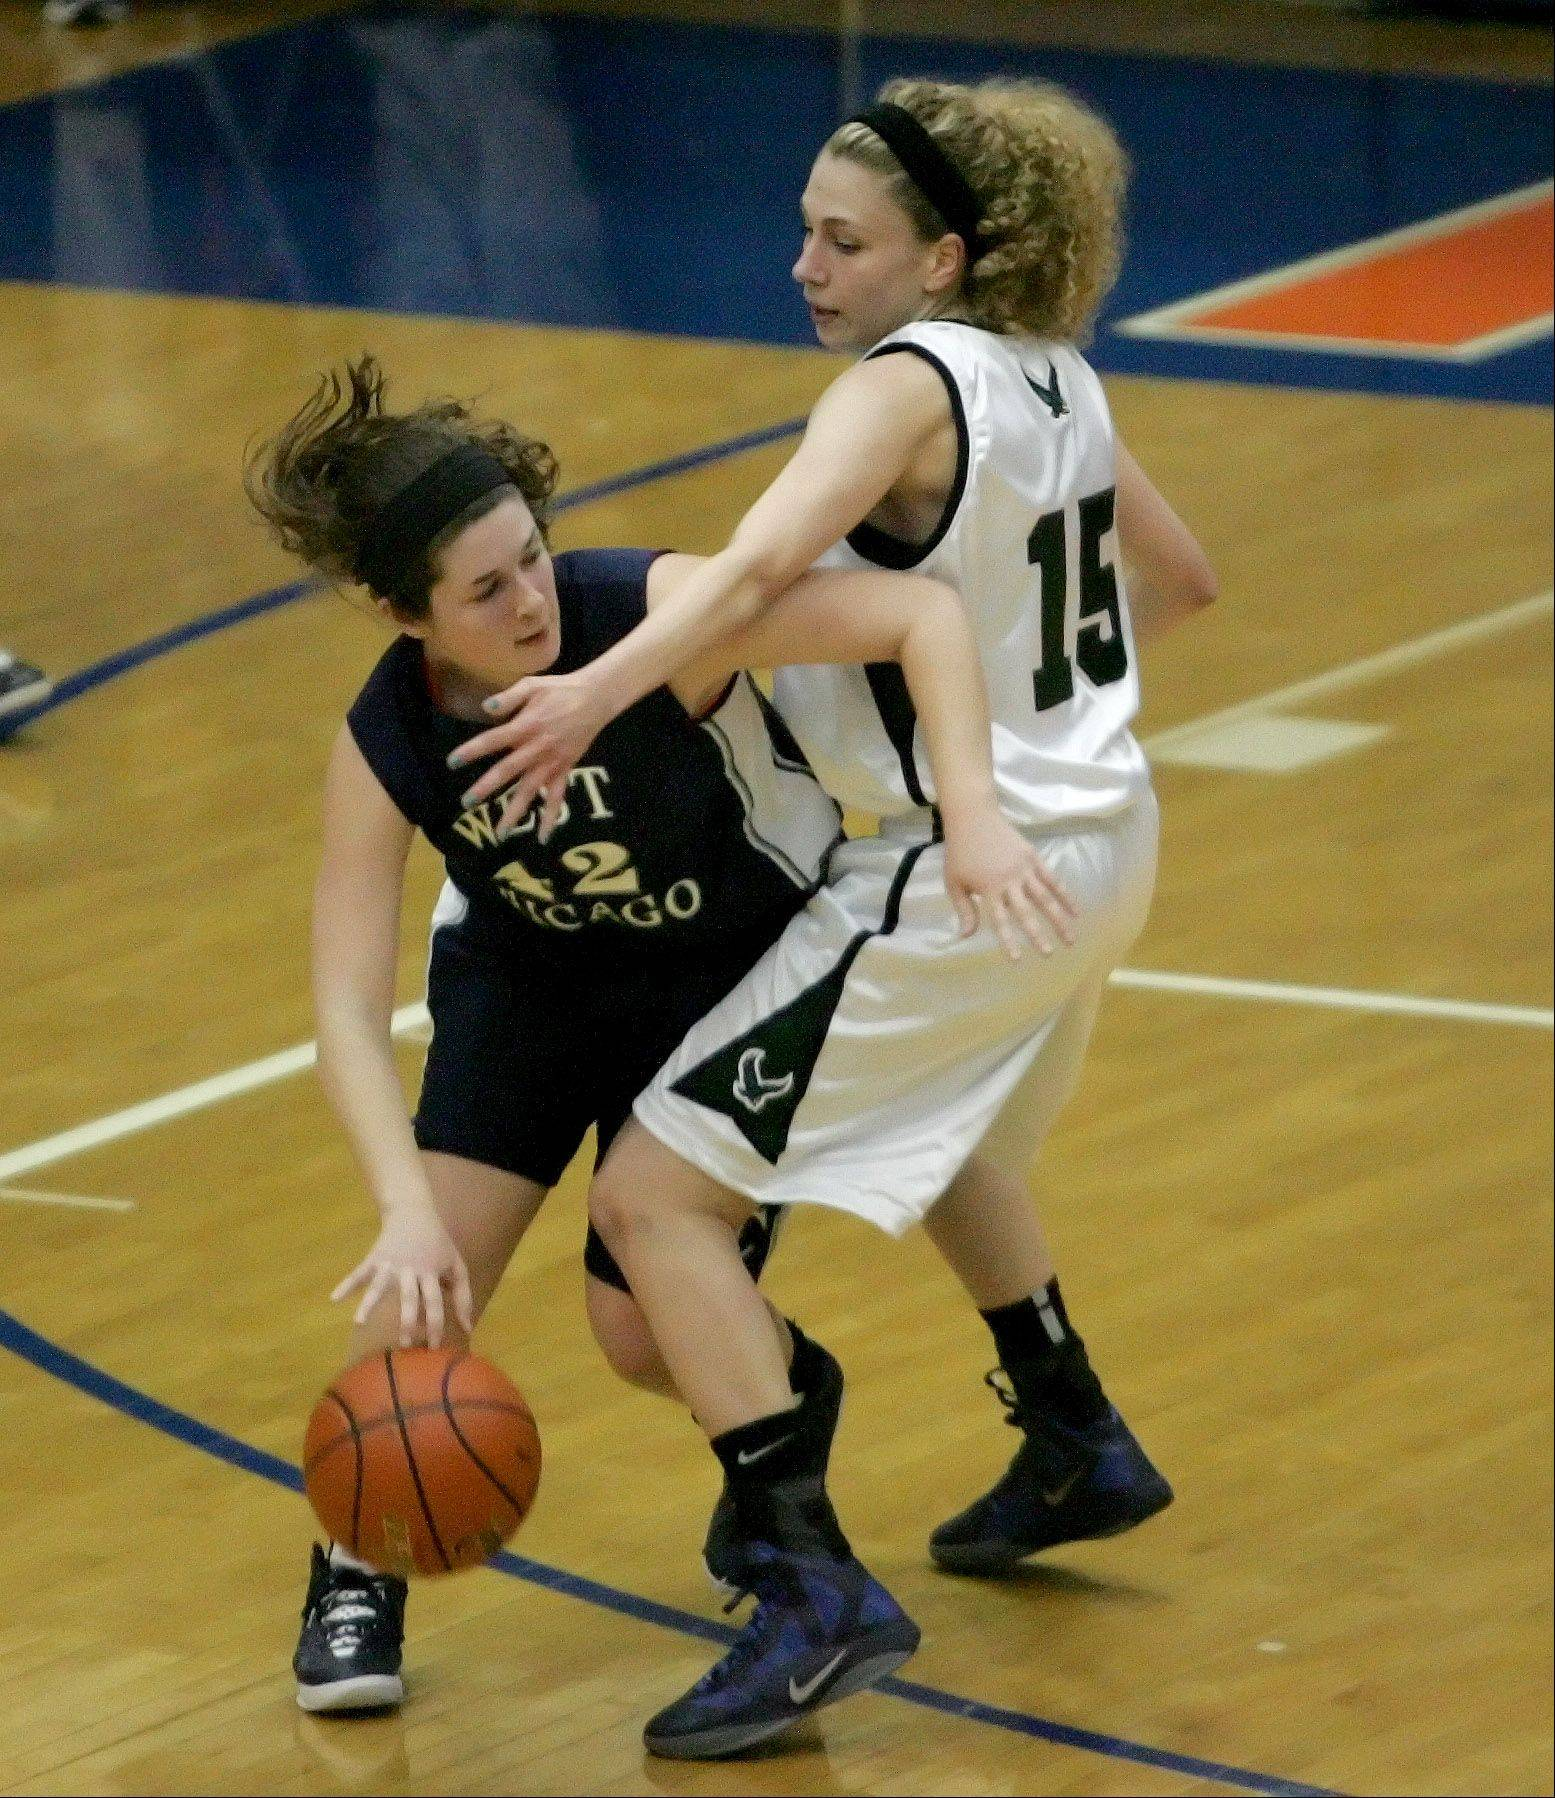 Emily Warkins of West Chicago, left, moves around Katie Gutzwiller of Bartlett.